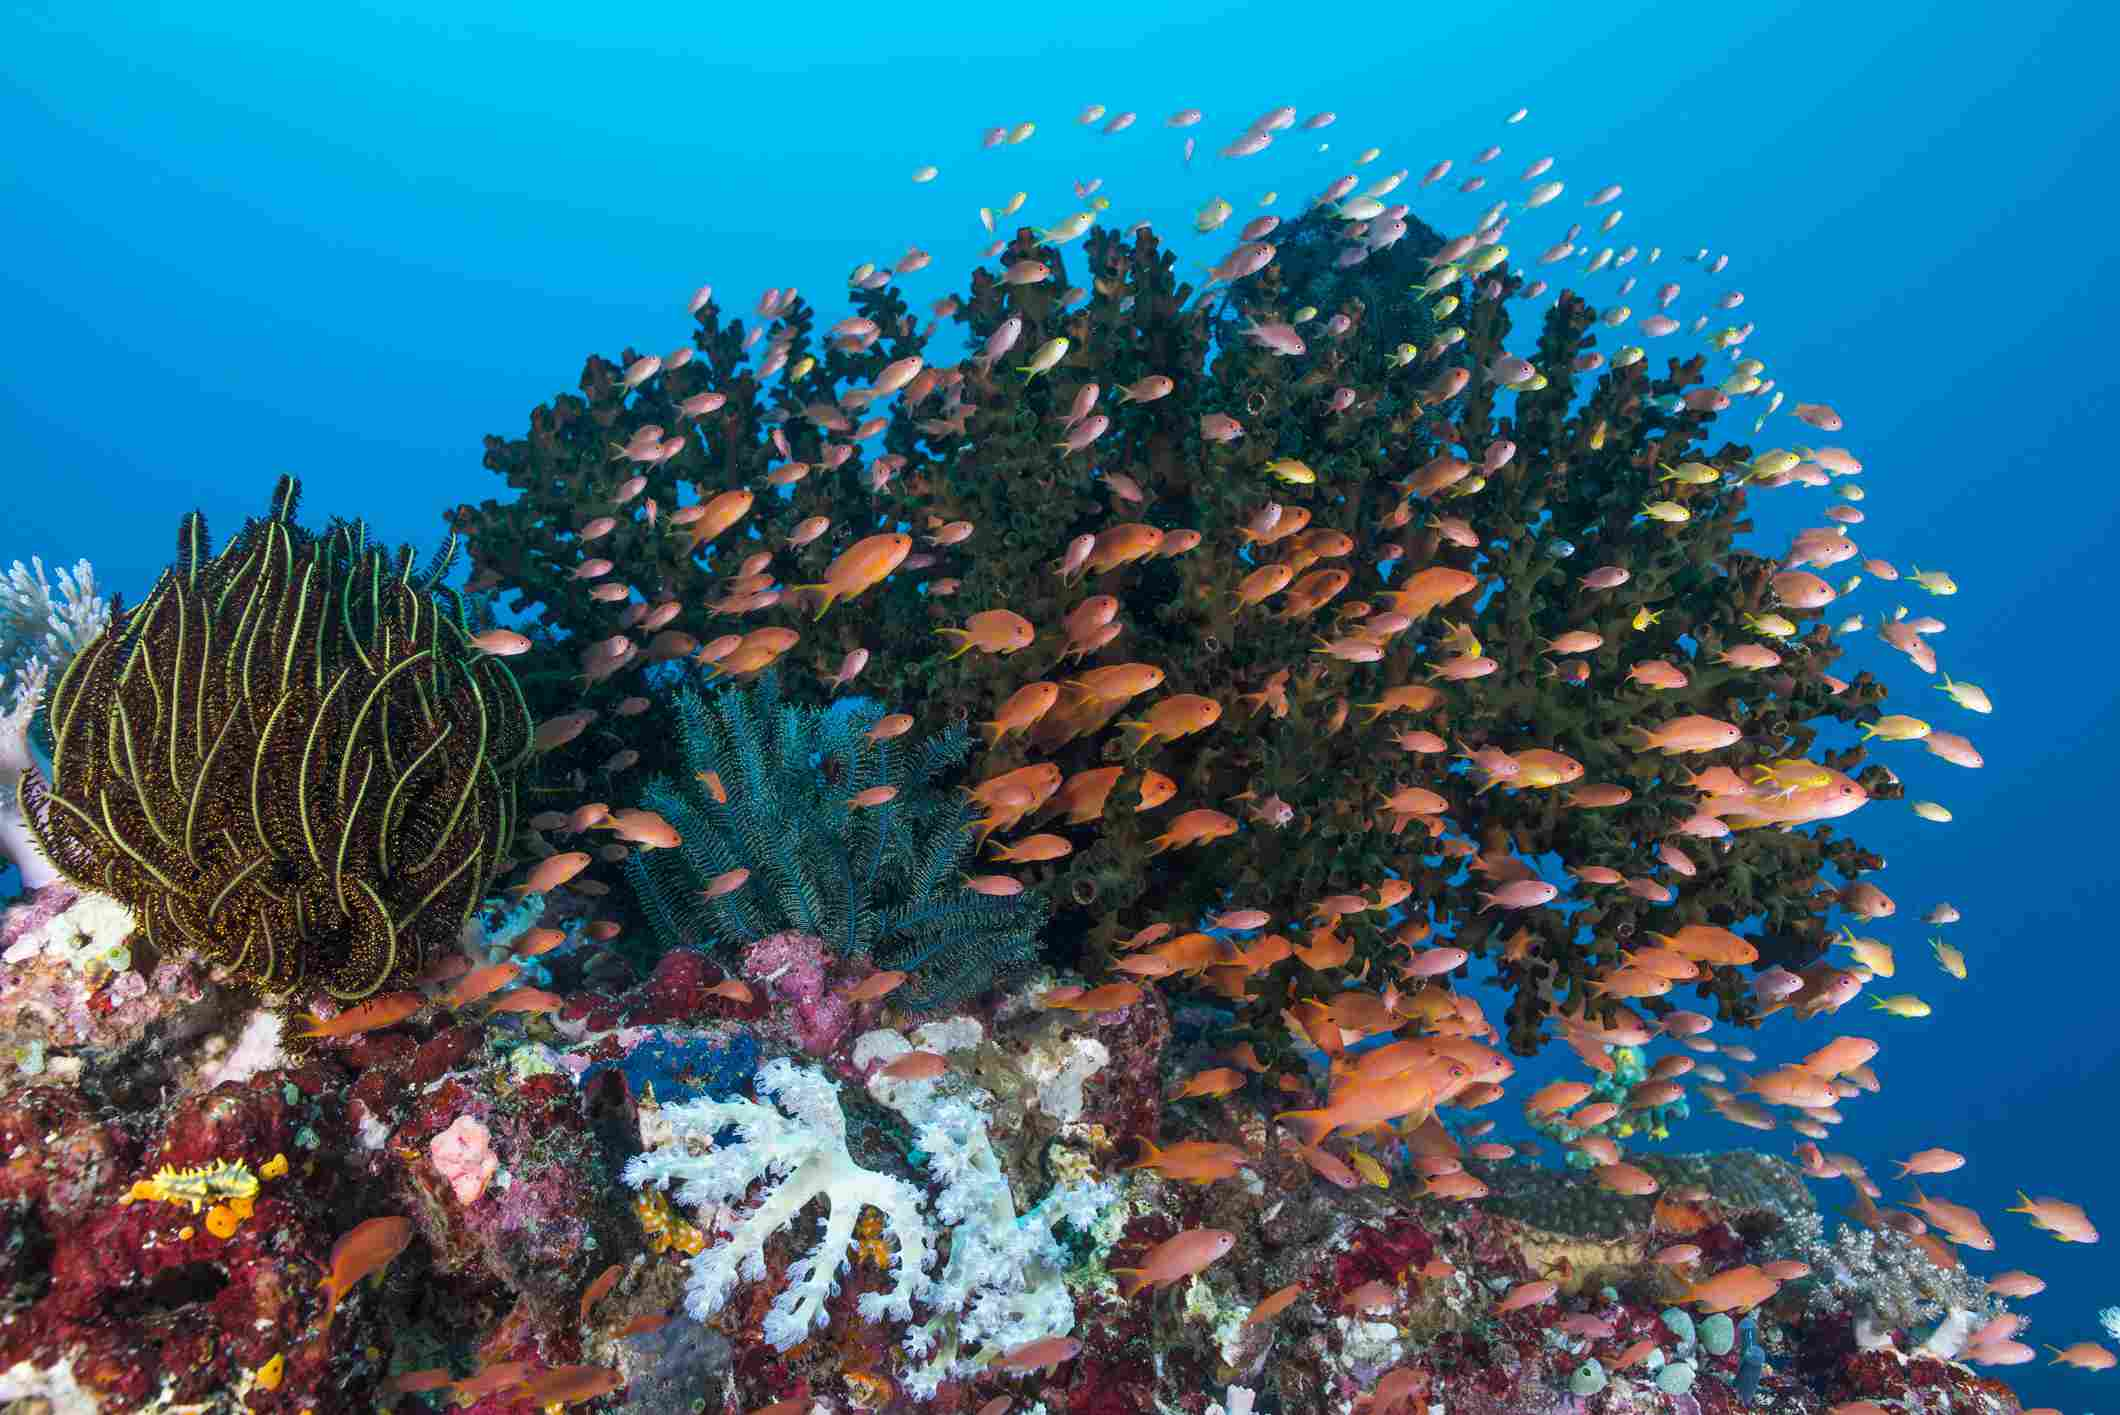 School of anthias fish swimming over a colorful reef in Anilao, Batangas, phillipines